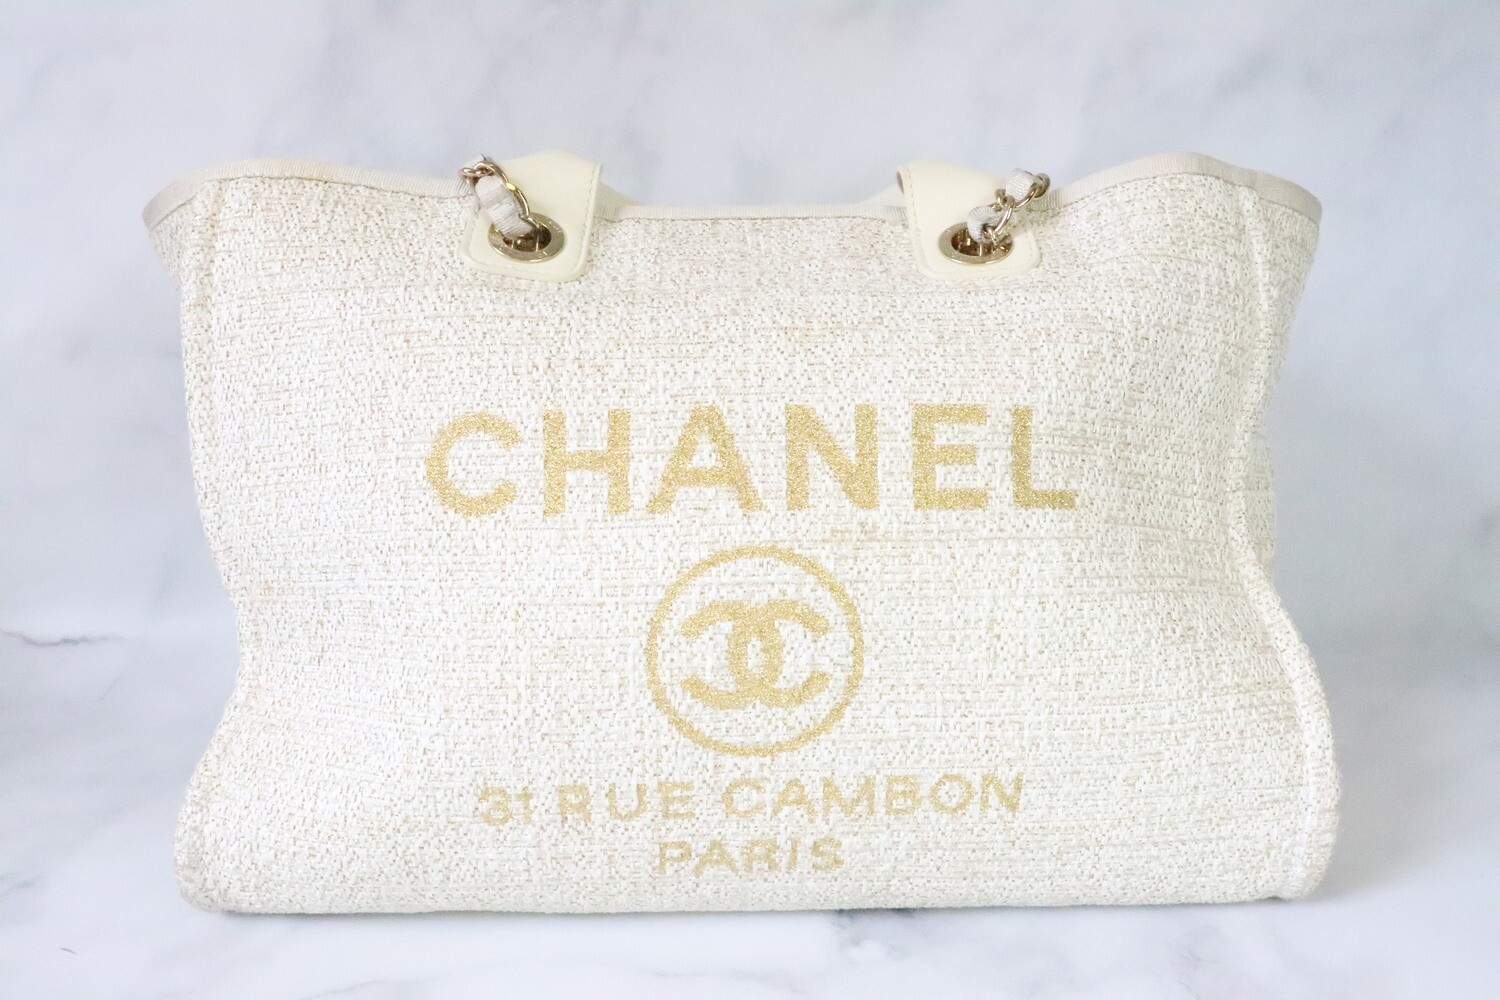 Chanel Deauville Large Ivory Tweed, Gold Hardware, Preowned - No Dustbag